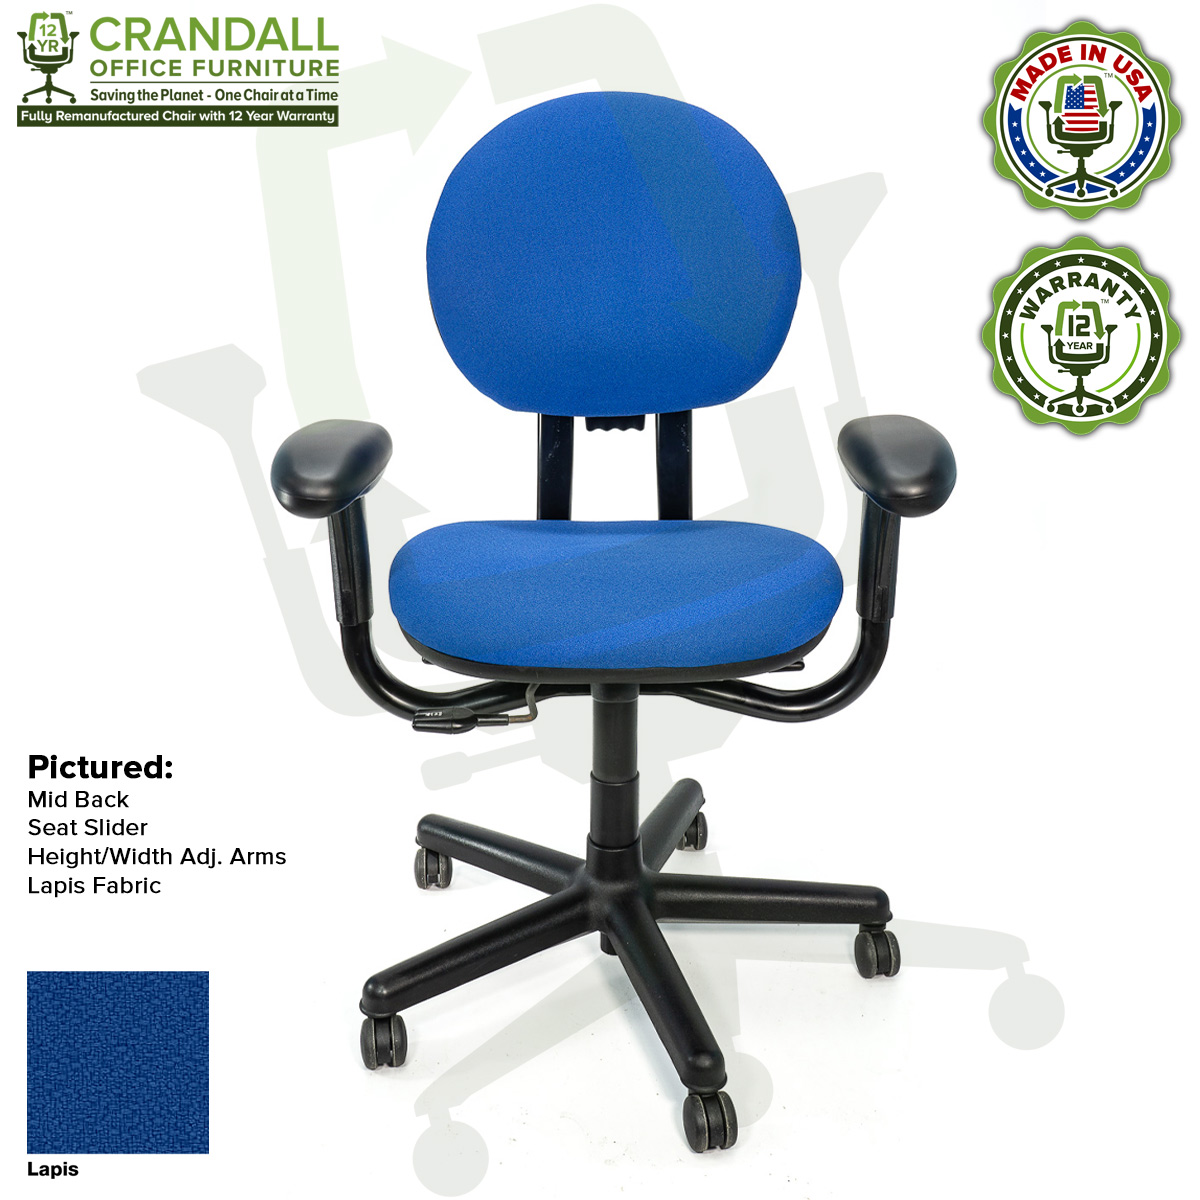 Crandall Office Furniture Remanufactured Steelcase Criterion Chair with 12 Year Warranty - 11 - Lapis Fabric